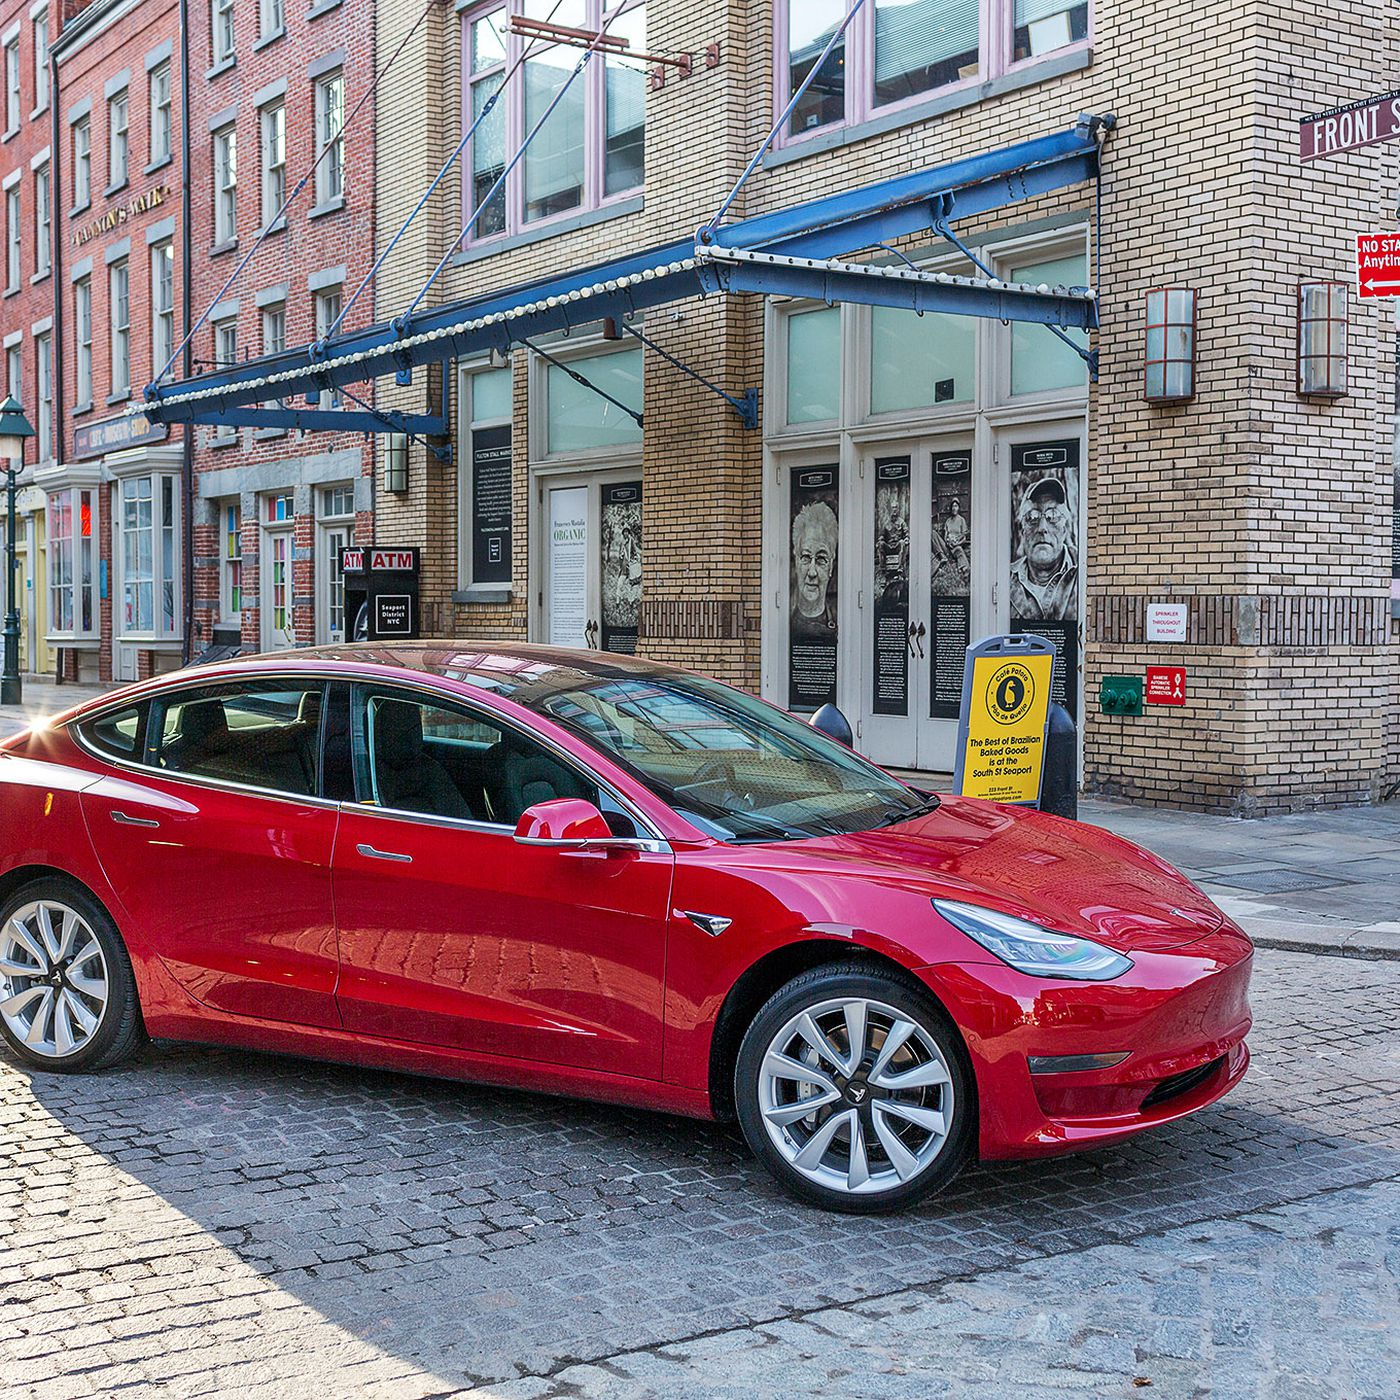 Tesla needs to sell more expensive Model 3s so the company doesn't